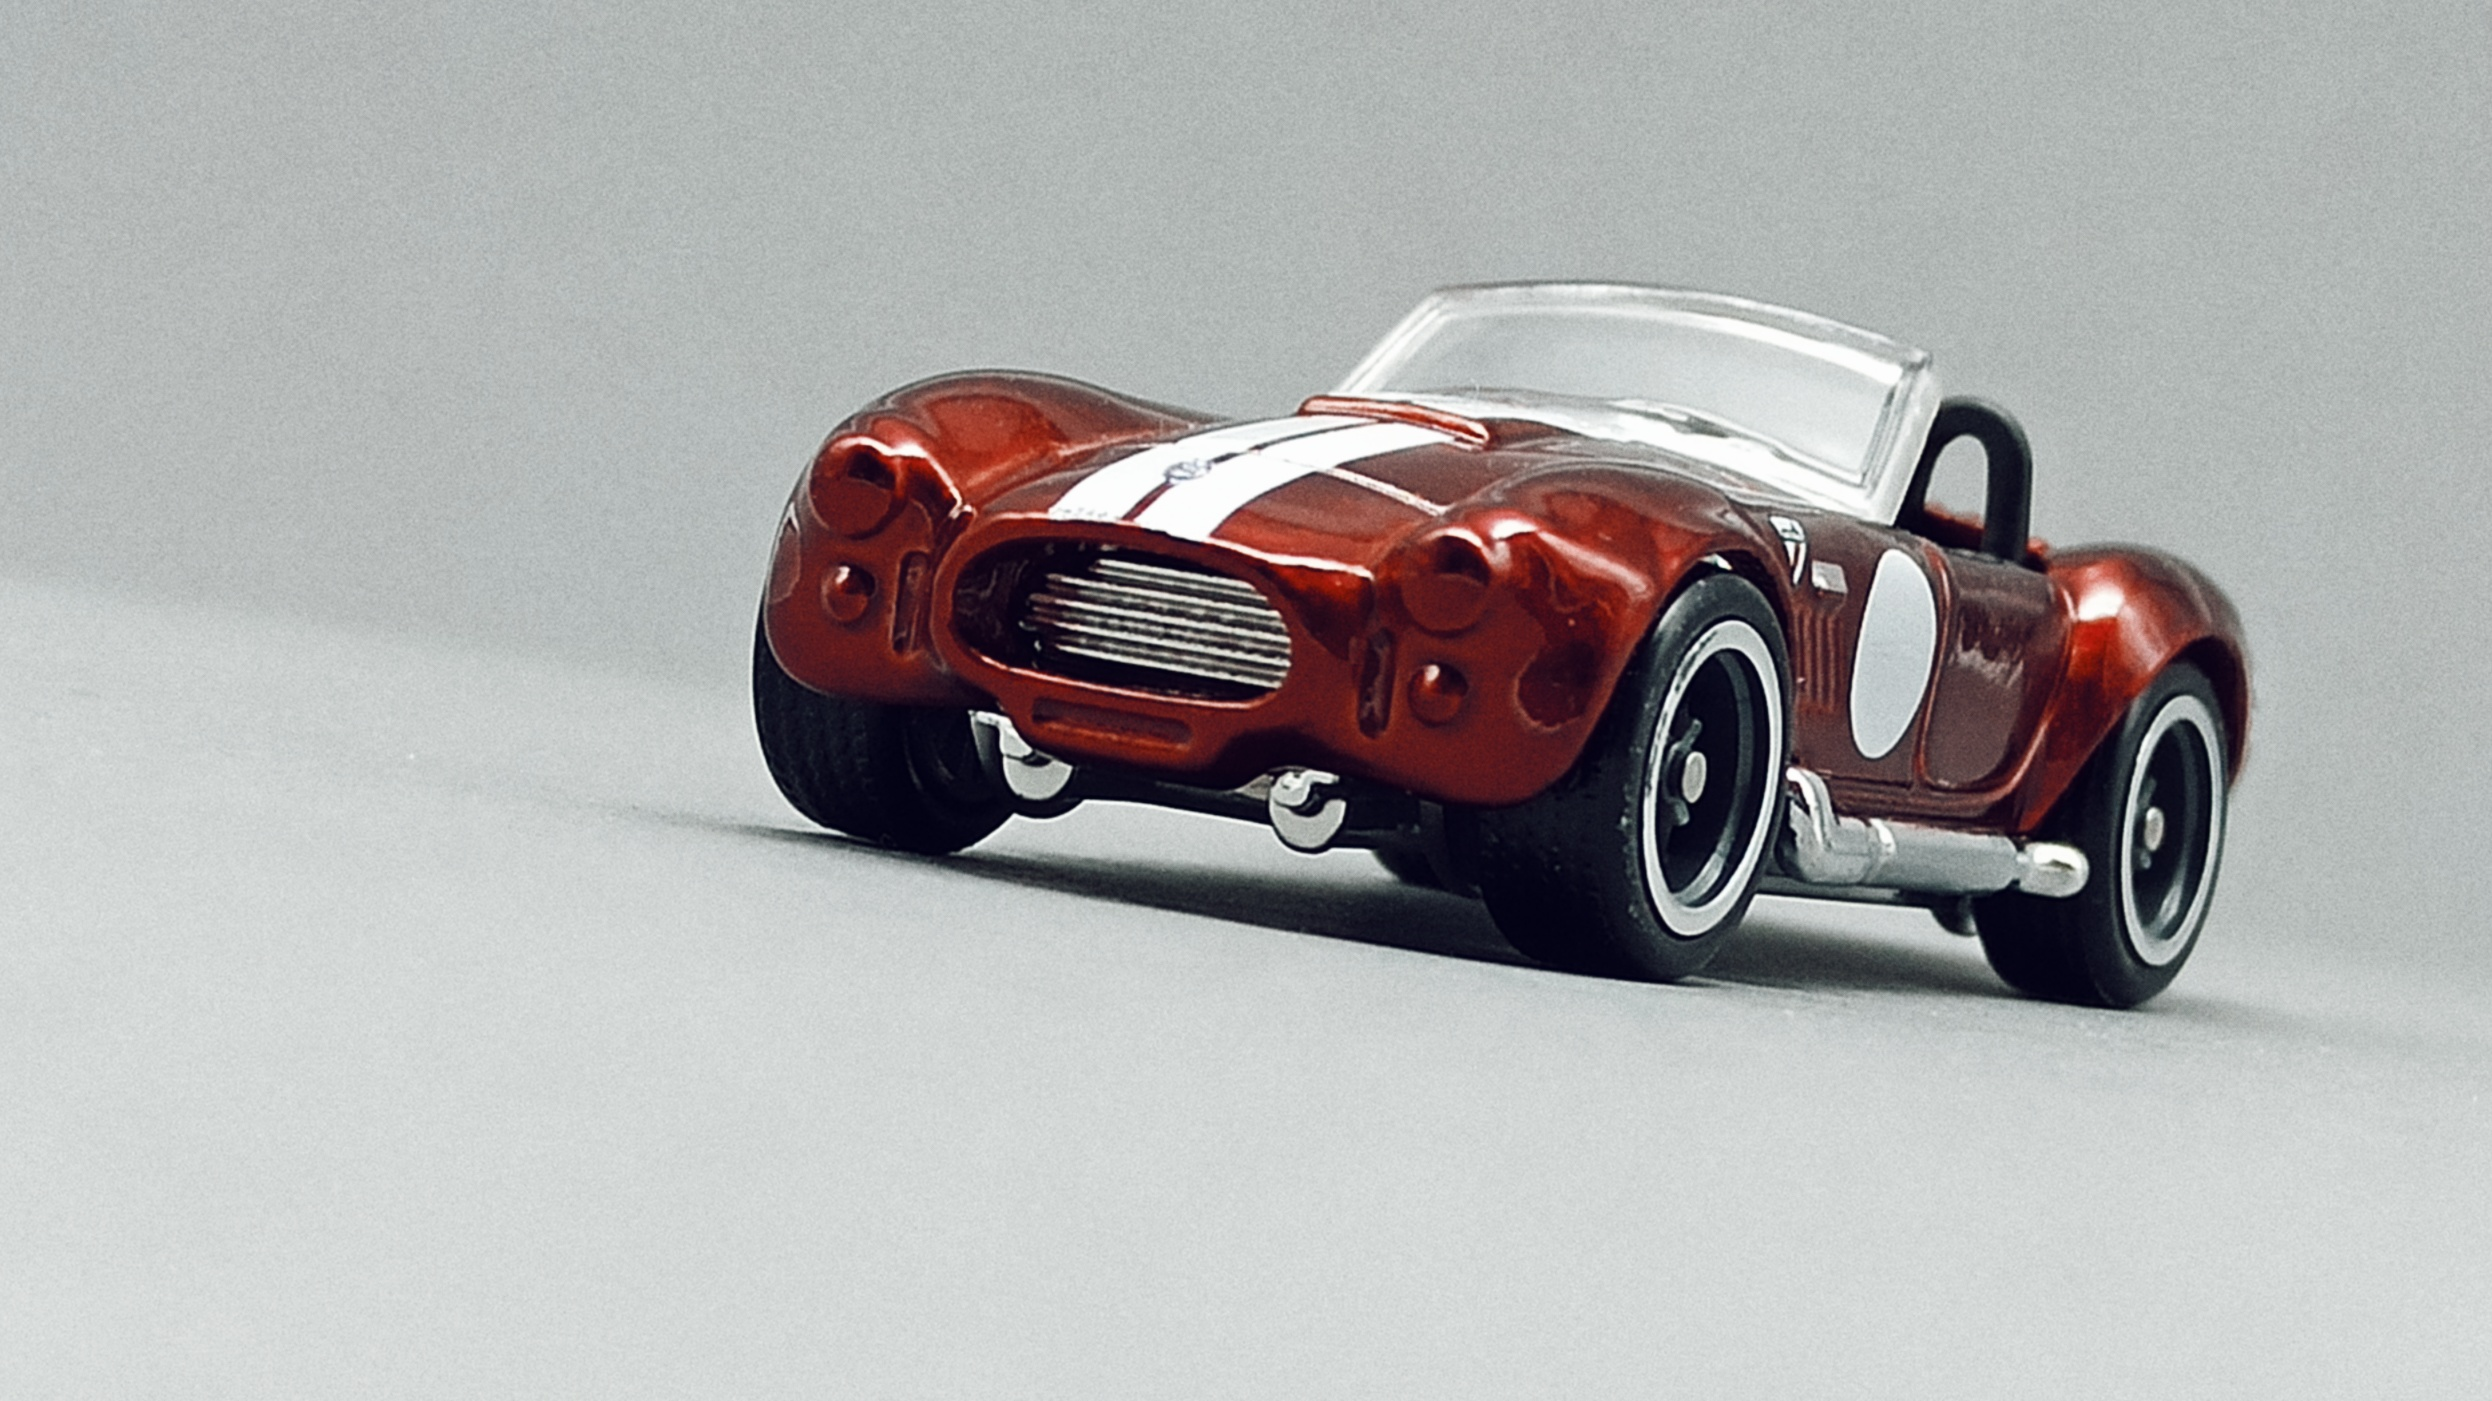 Hot Wheels Classic Cobra (Shelby Cobra 427 S/C) (GTD13) 2021 (250/250) Muscle Mania (10/10) spectraflame red Super Treasure Hunt (STH) front angle